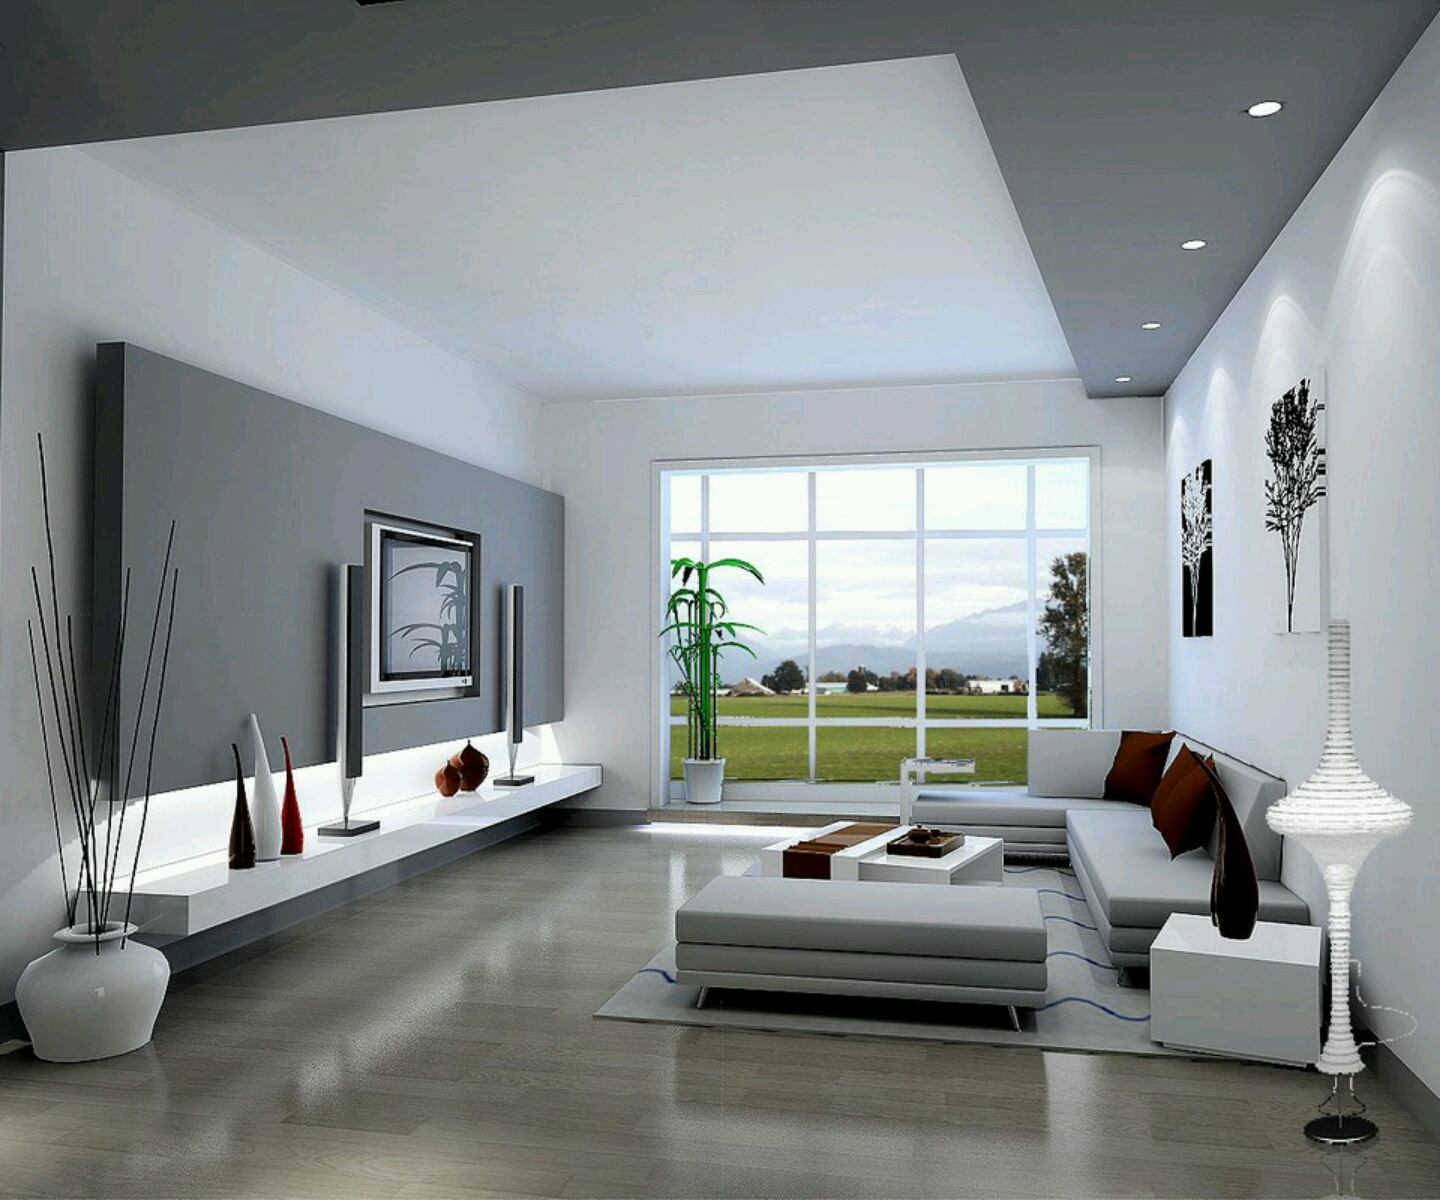 New home designs latest modern living rooms interior for Modern drawing room interior design